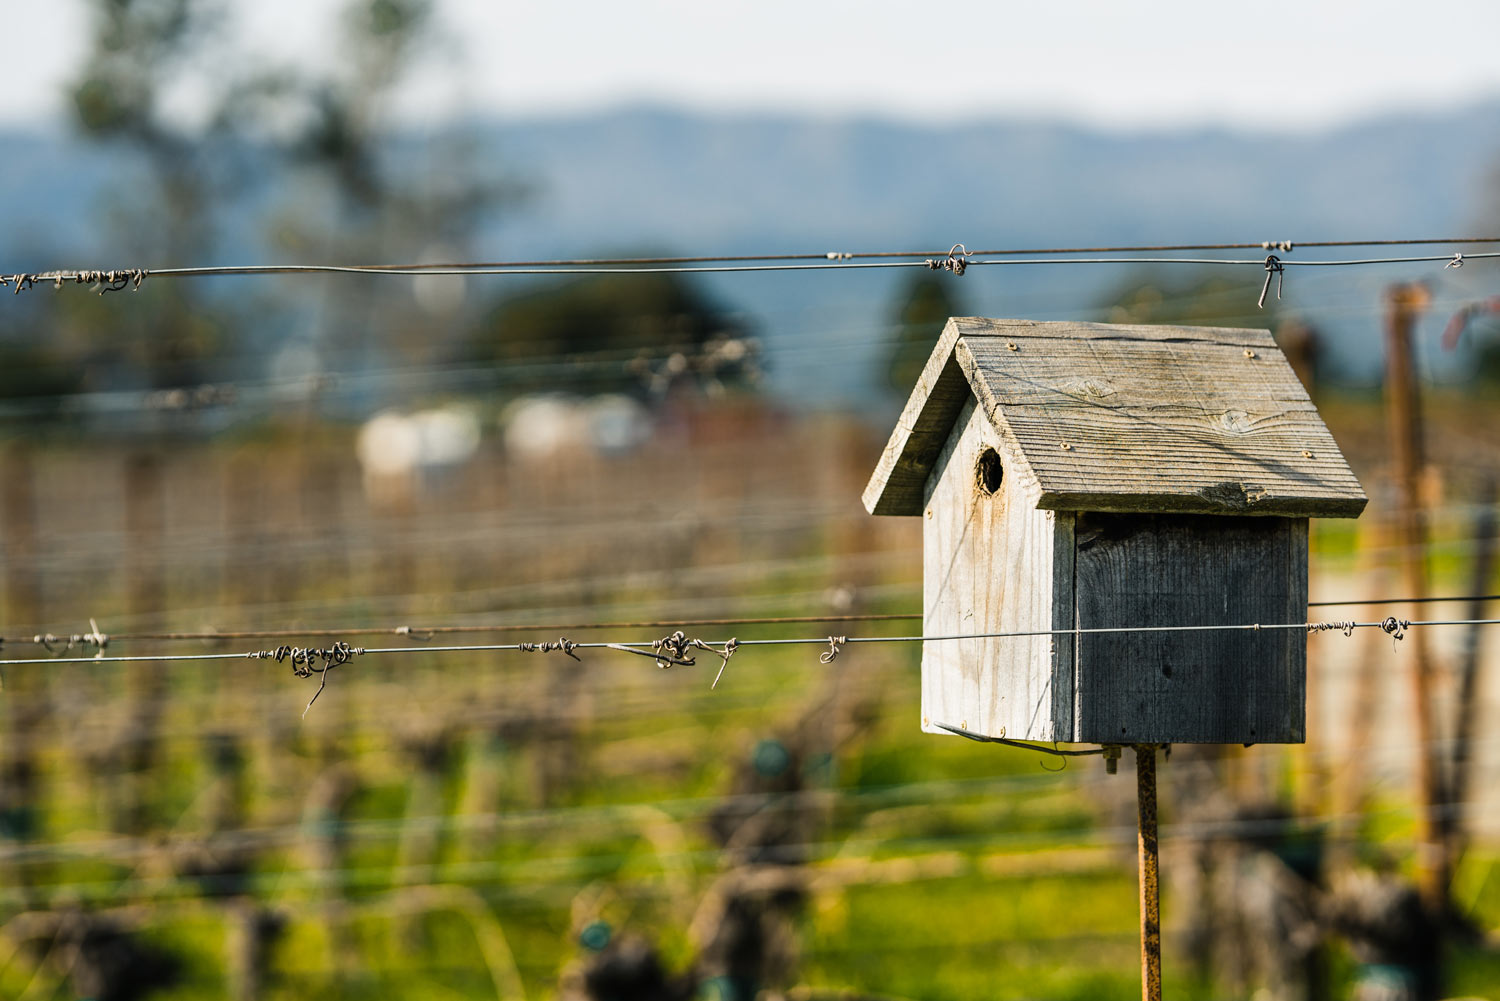 View of a bird house in the Trailside Vineyard